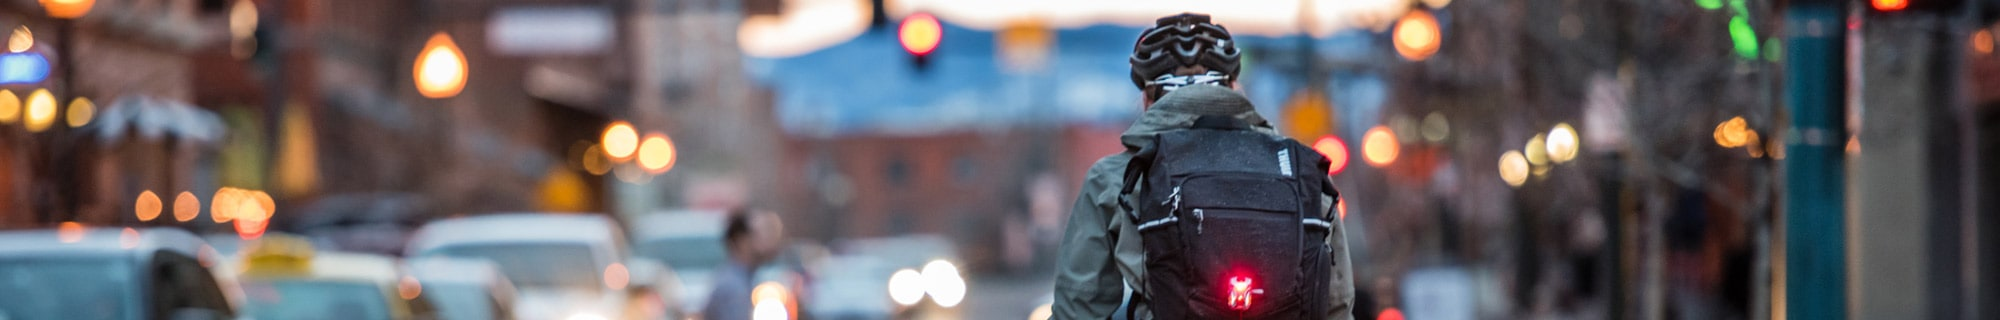 Thule biking backpacks